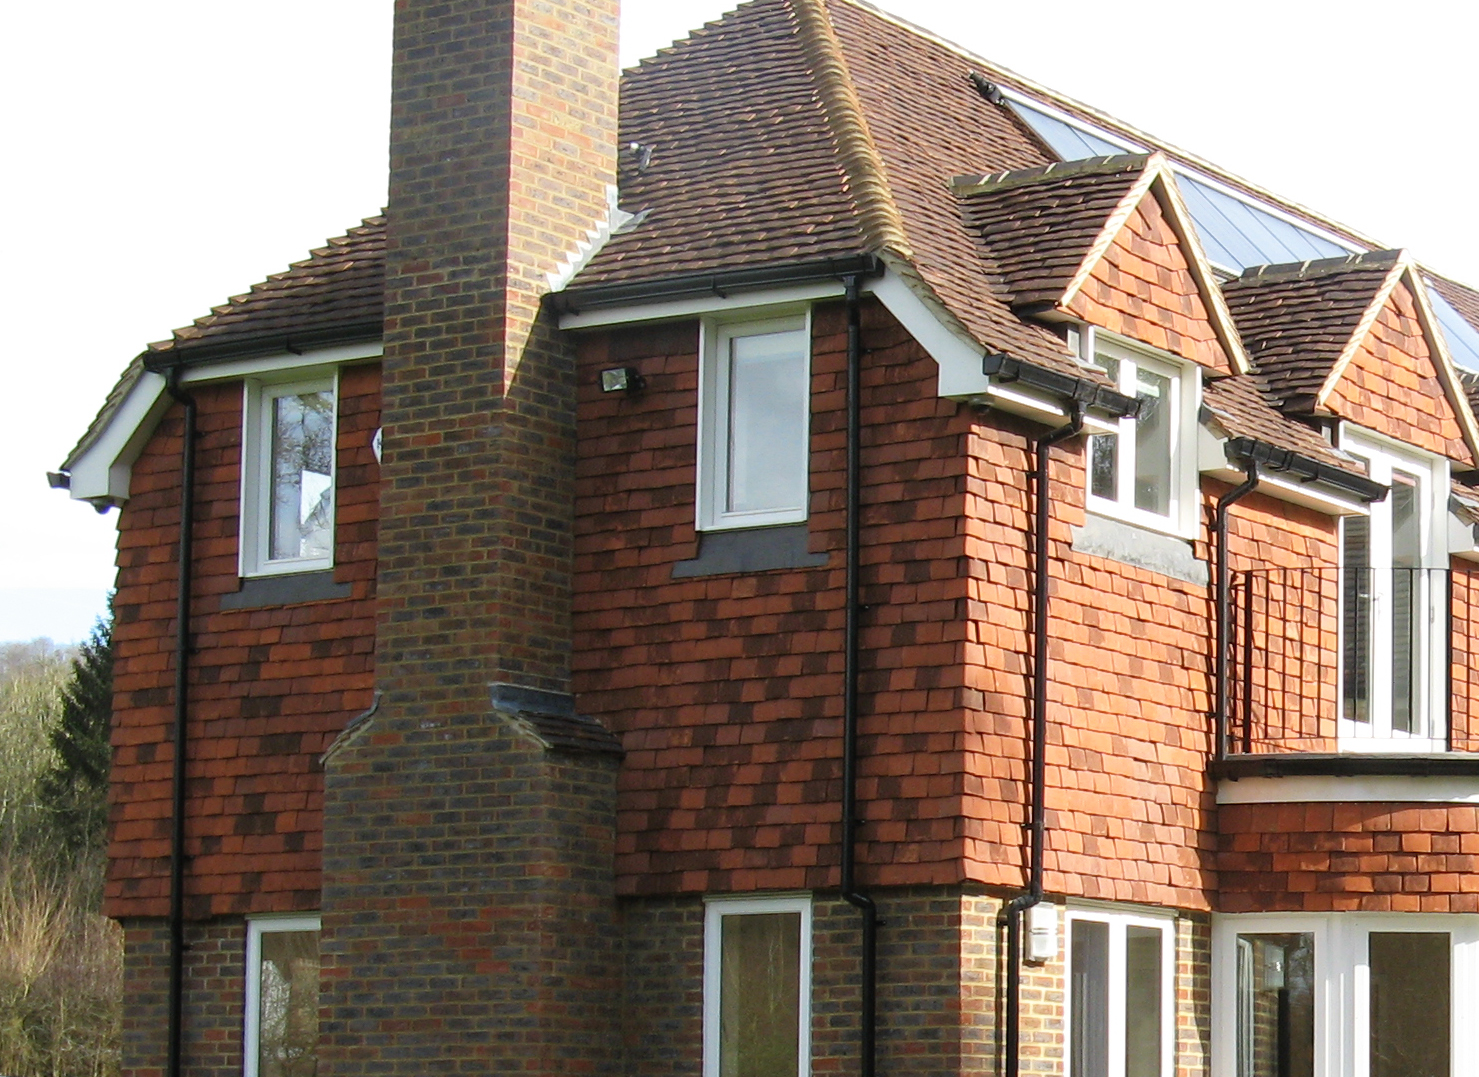 Tudor Roof Tiles Blog Why Not Add Style And Value With